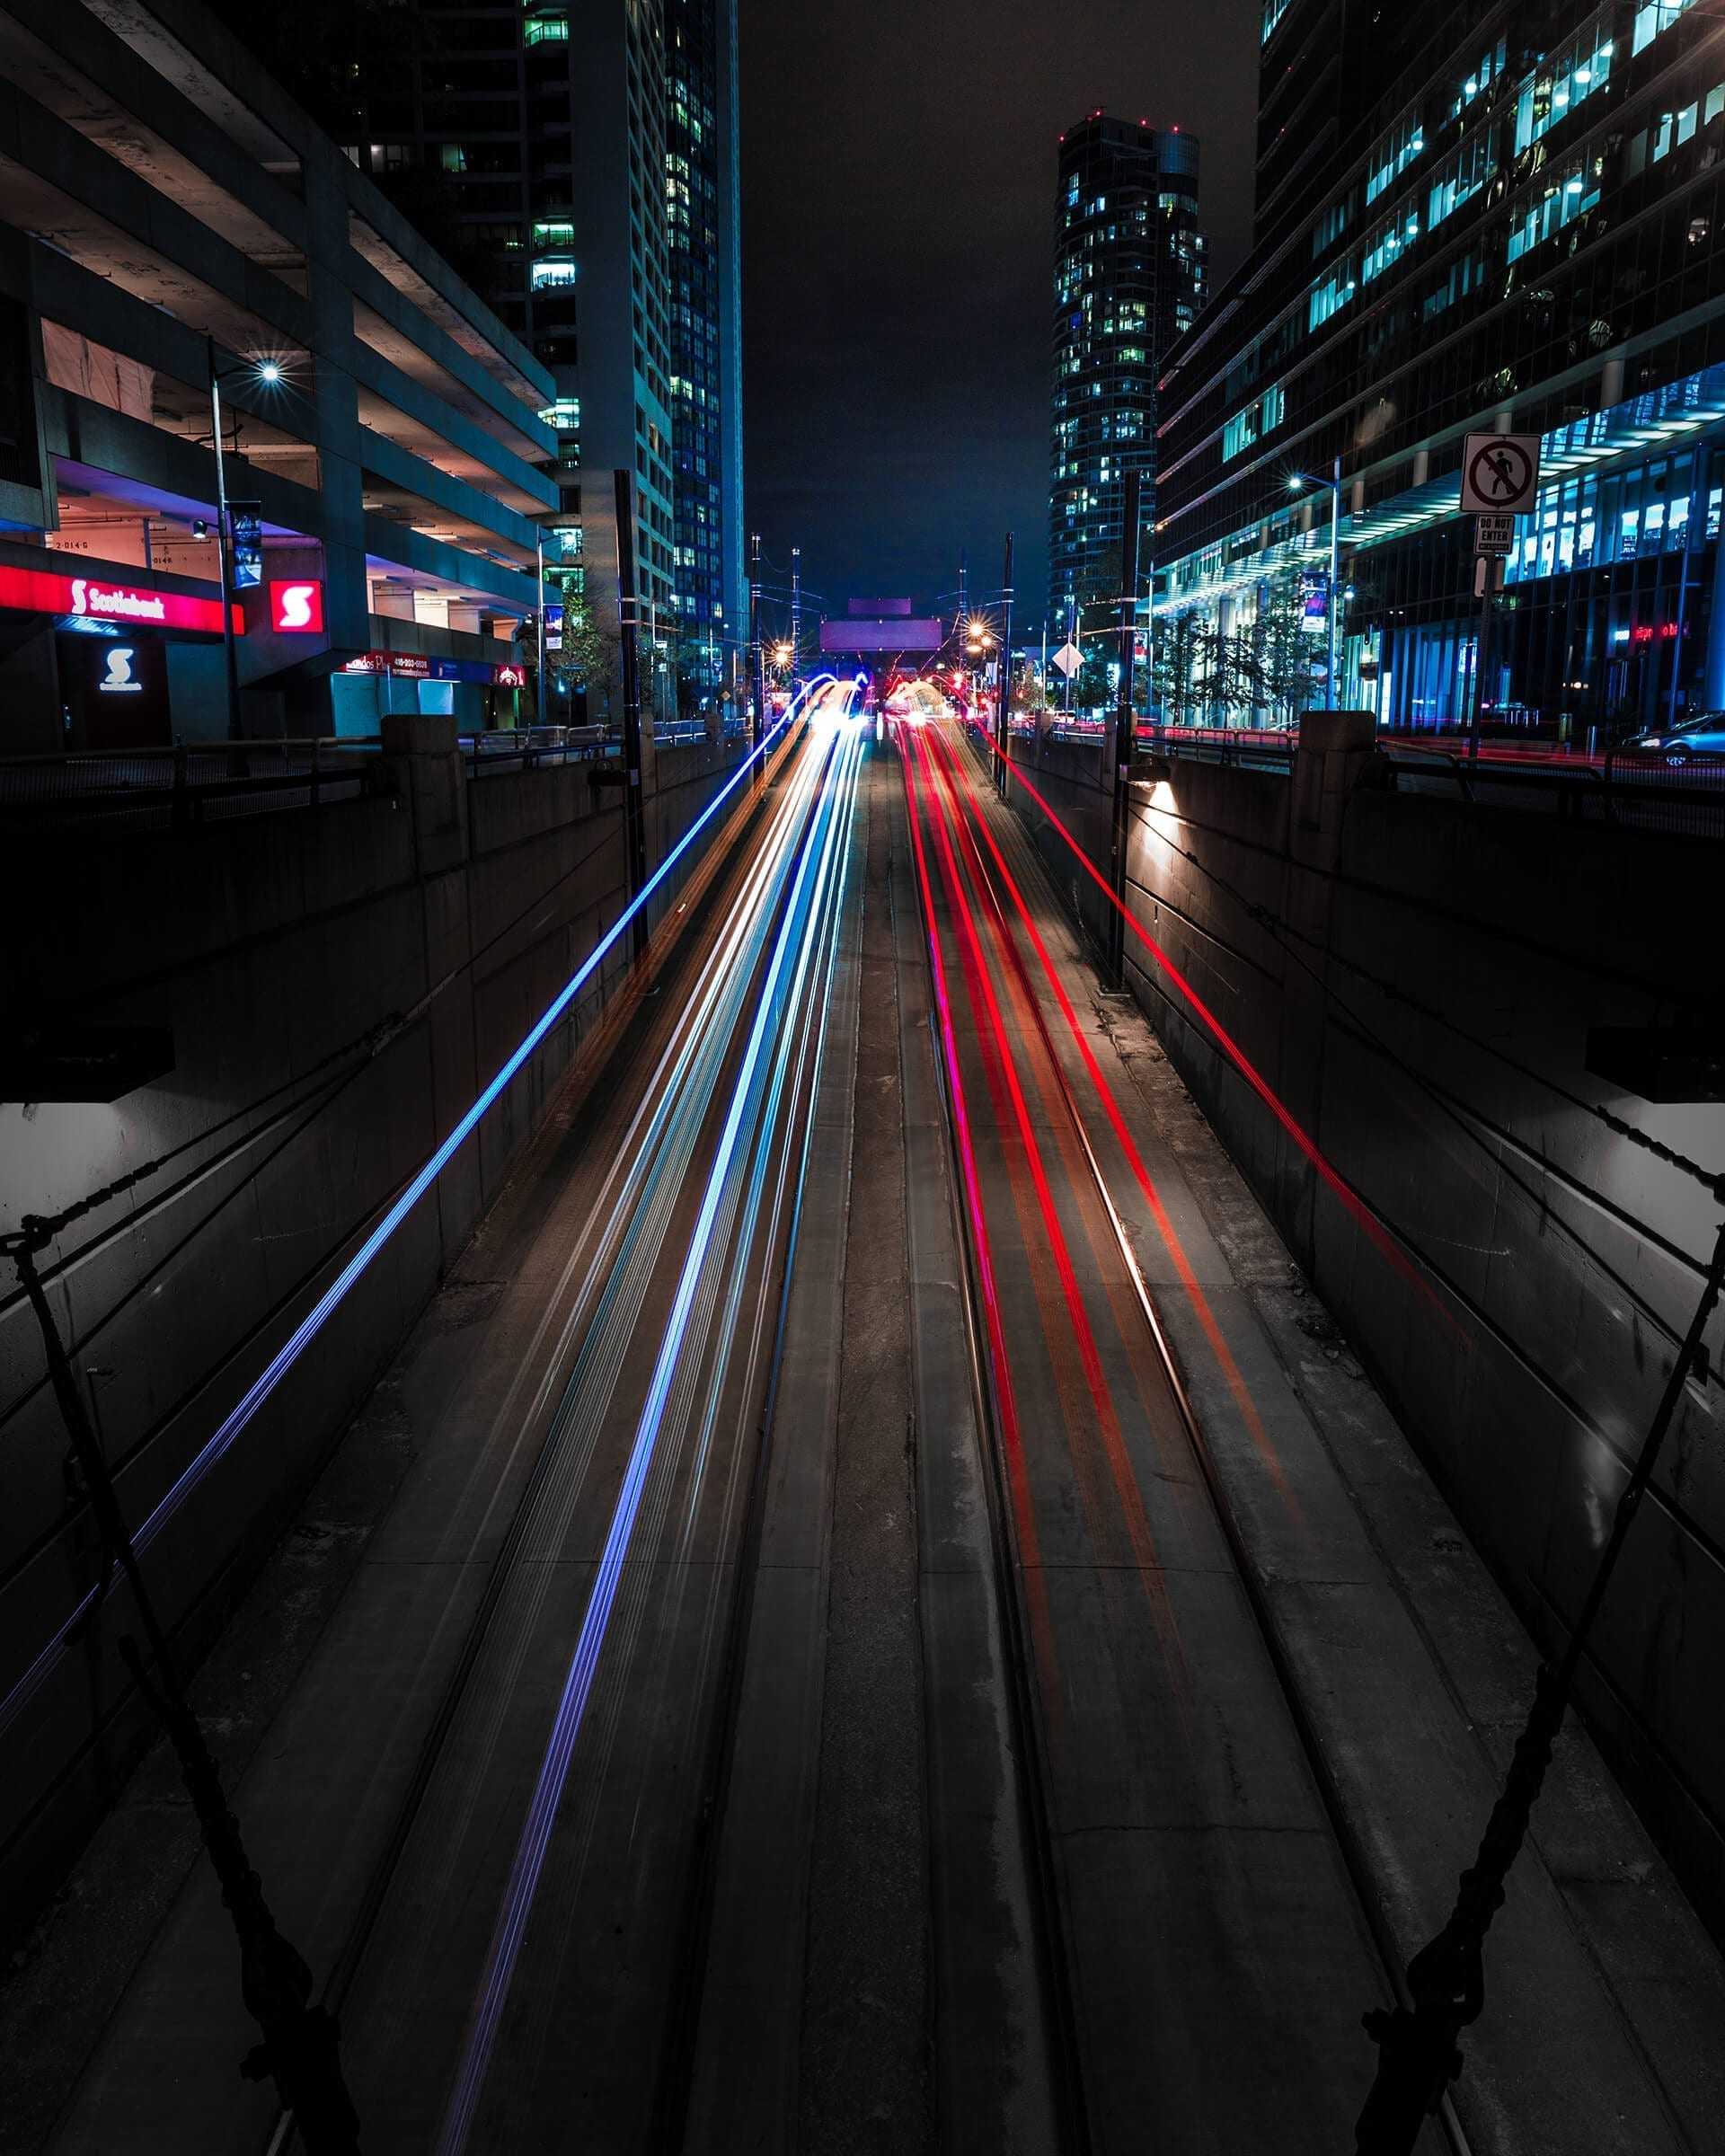 Light Trails in the City - the concept of fast change